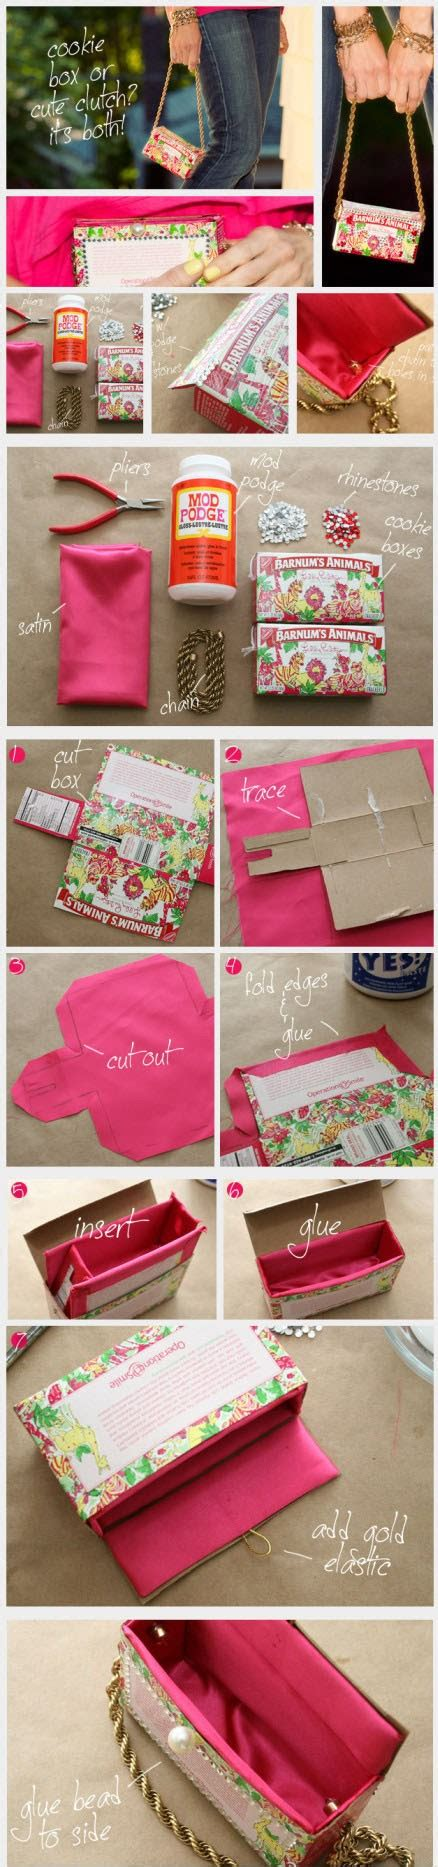 diy interesting and easy craft ideas